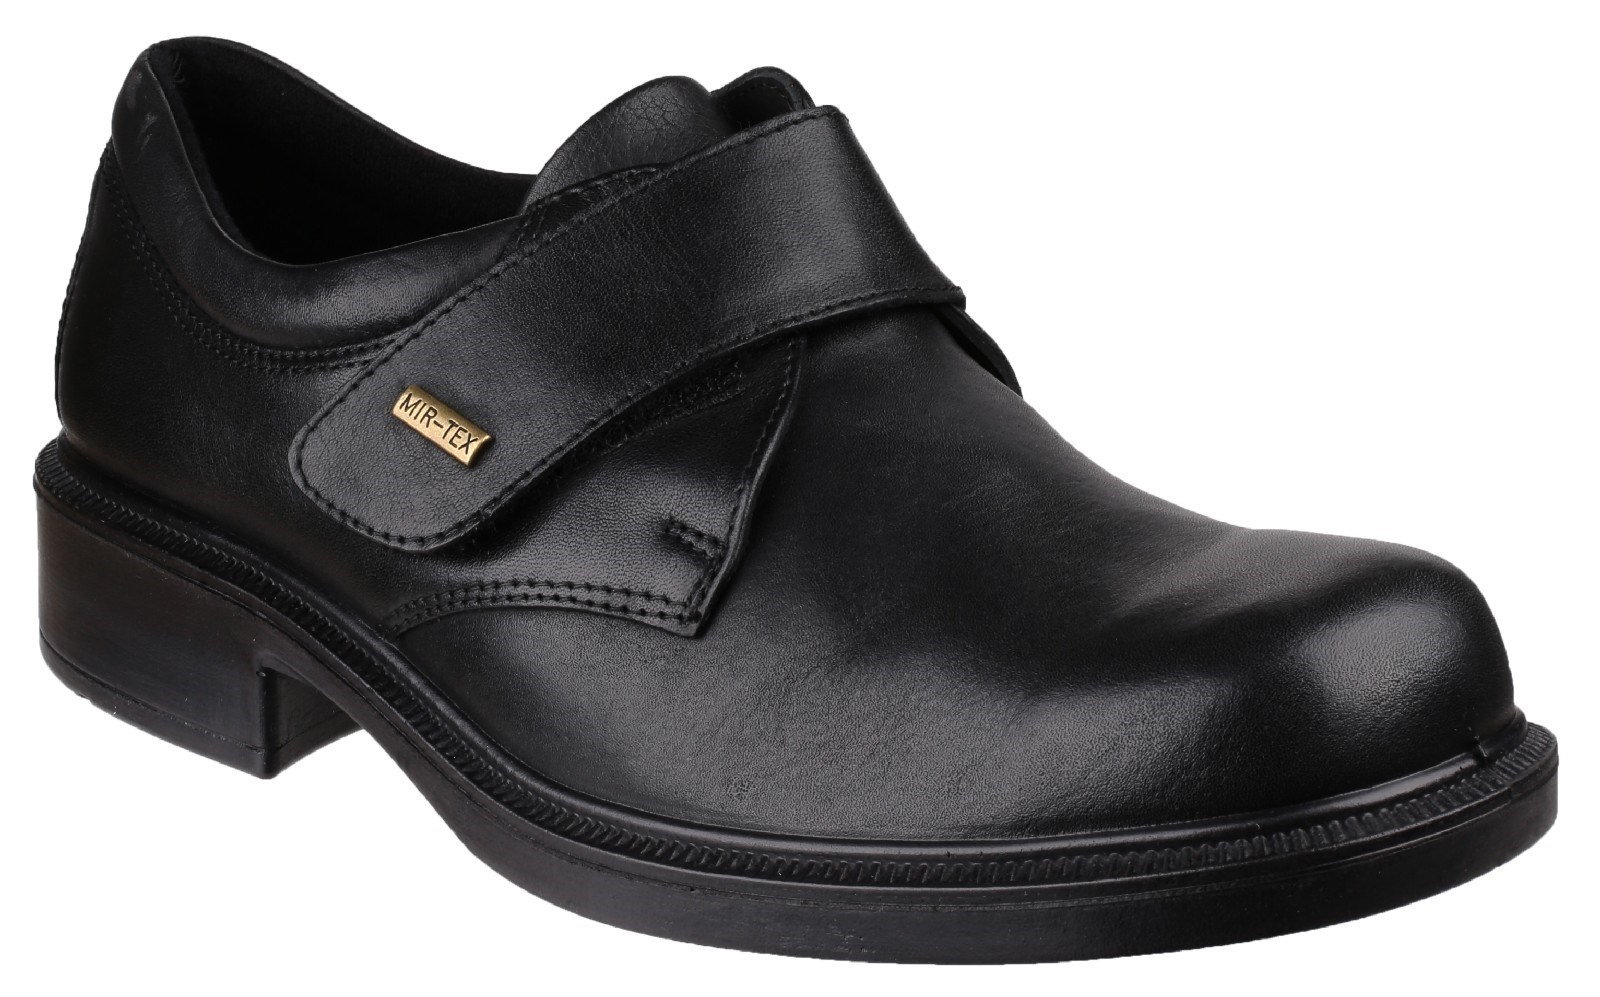 Cotswold Cleeve black black black or brown leather waterproof touch fastening shoe 98777a